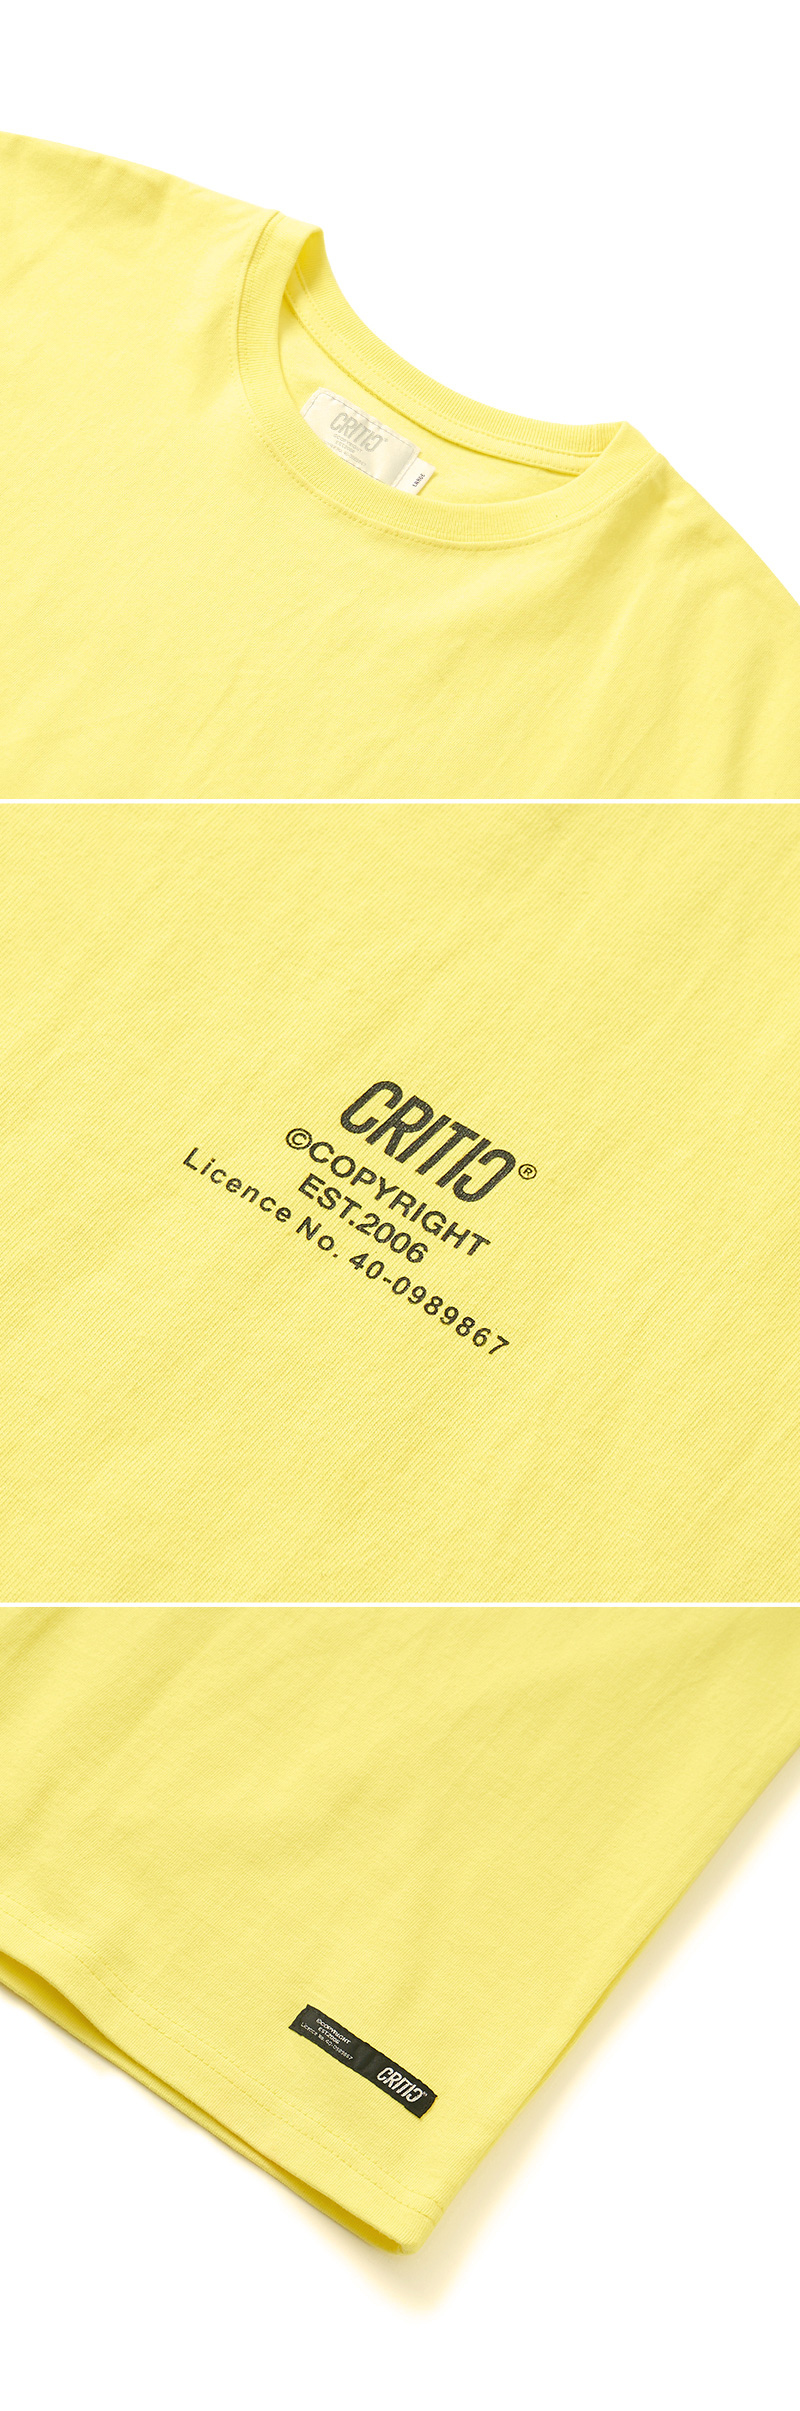 크리틱 METAL LOGO T-SHIRT(LEMON YELLOW)_CTONURS13UY1